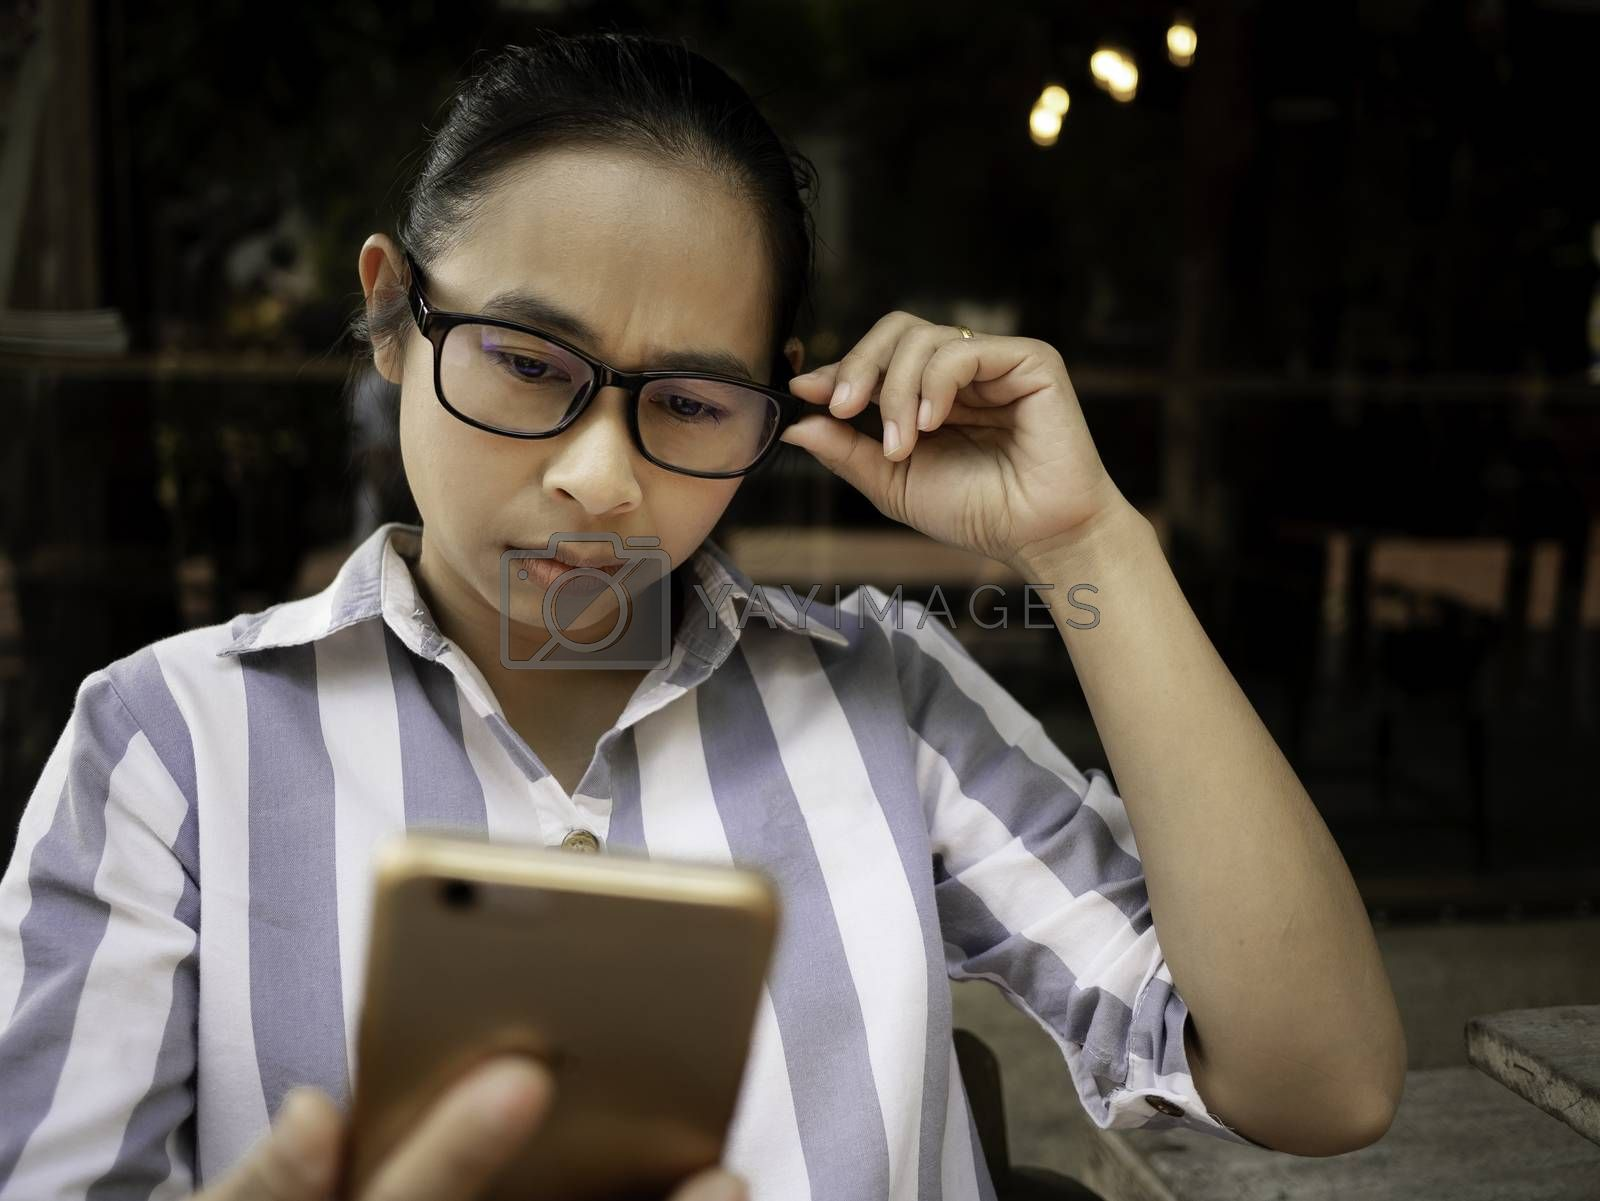 Stressed Asian women sitting on wooden chair with smartphone. She have eye pain from looking at the smartphone for too long. Health and medical concept. by TEERASAK